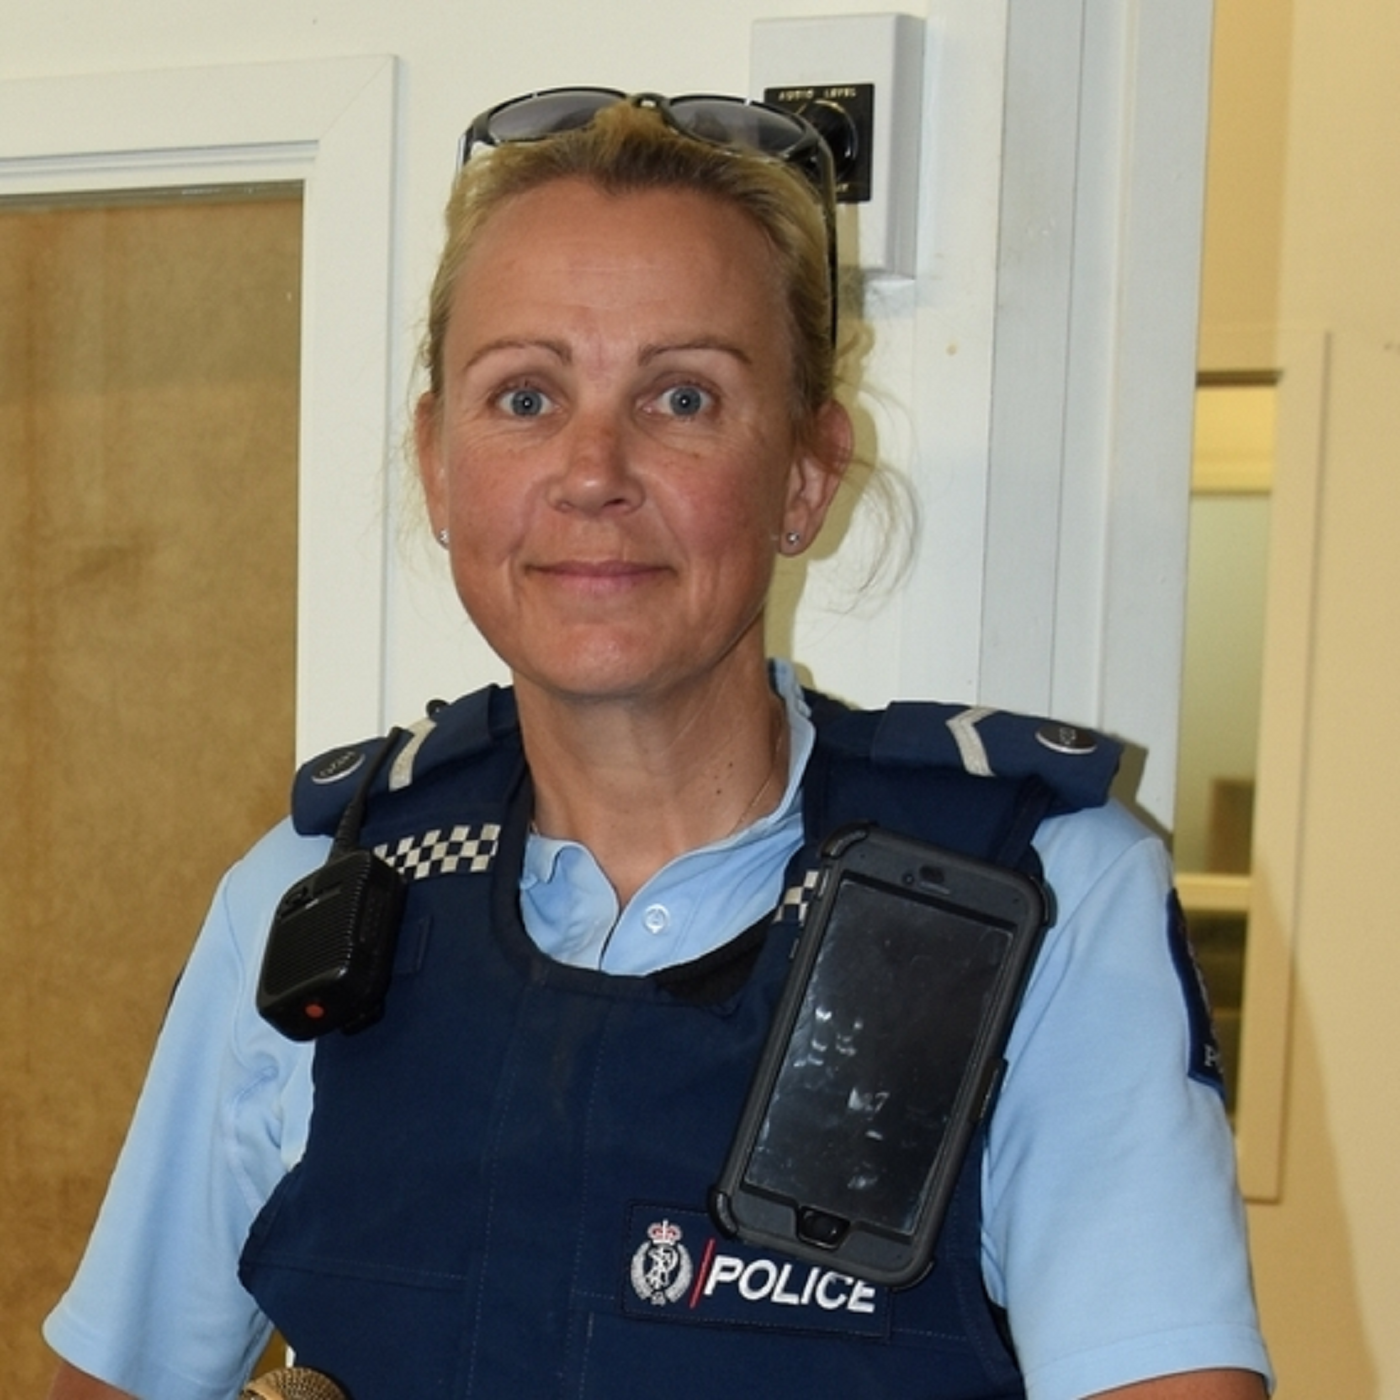 On the Beat with Constable Deb Potter-01-04-2020 Stolen Cars - Family Violence - Mental Health - Police105